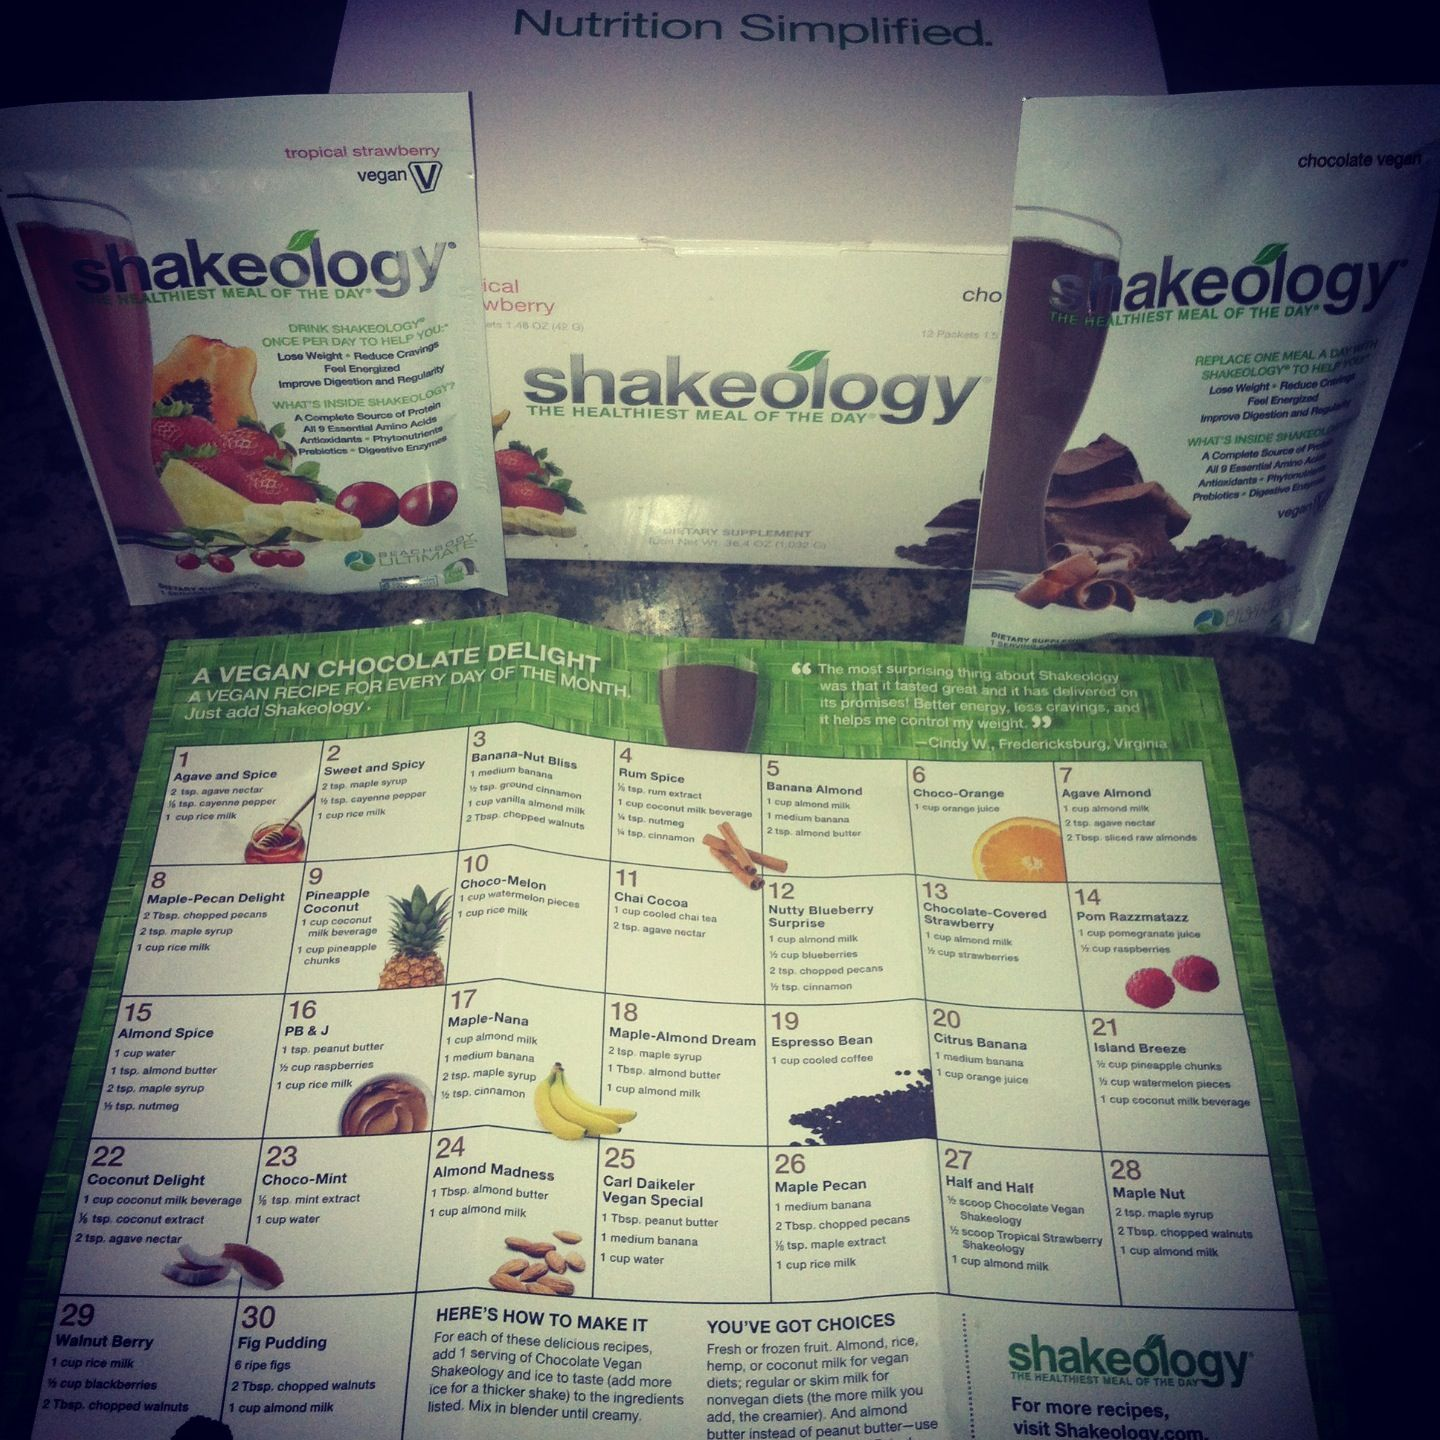 Shakeology samples are in!! Try out the healthiest meal of the day or get your hands on the amazing 3 day cleanse!!  Shoot me a msg at Www.facebook.com/mybodyambassador  for all the details!!